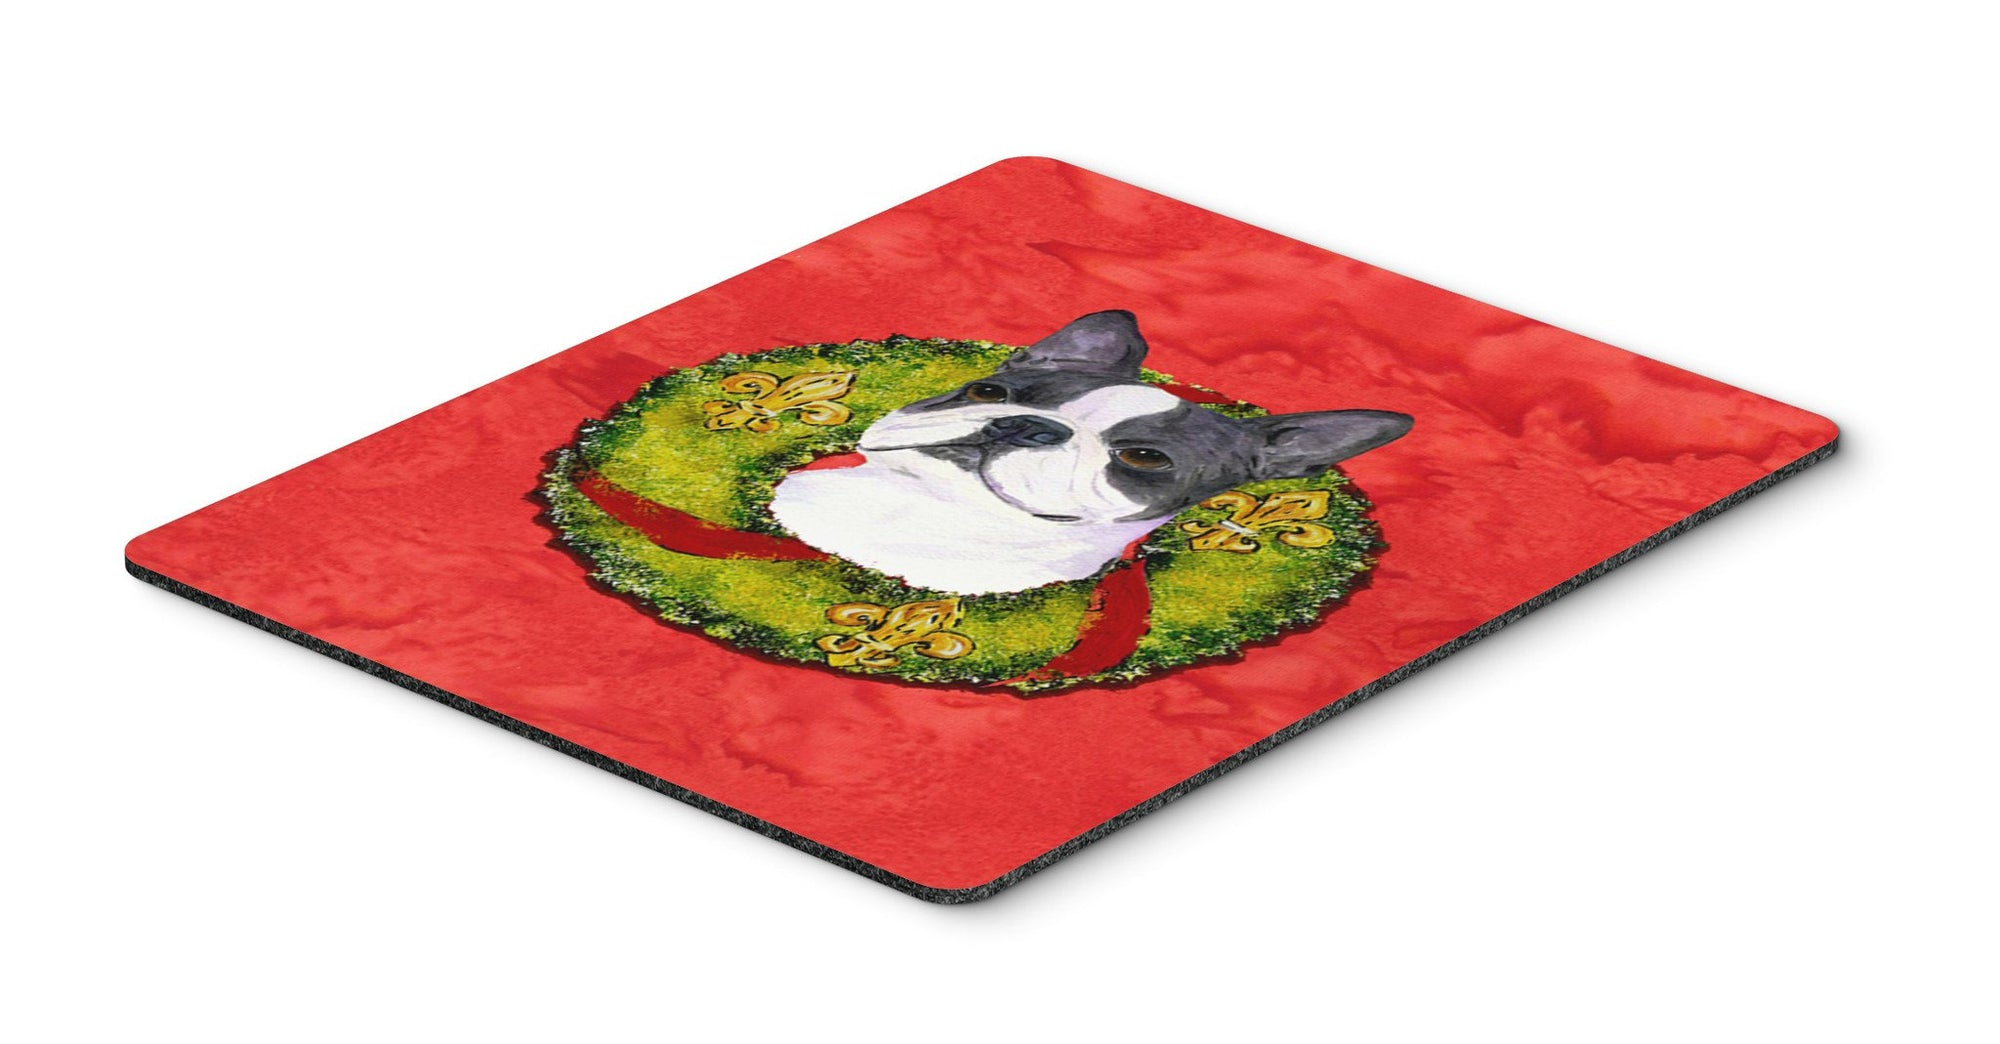 Boston Terrier Mouse Pad, Hot Pad or Trivet by Caroline's Treasures